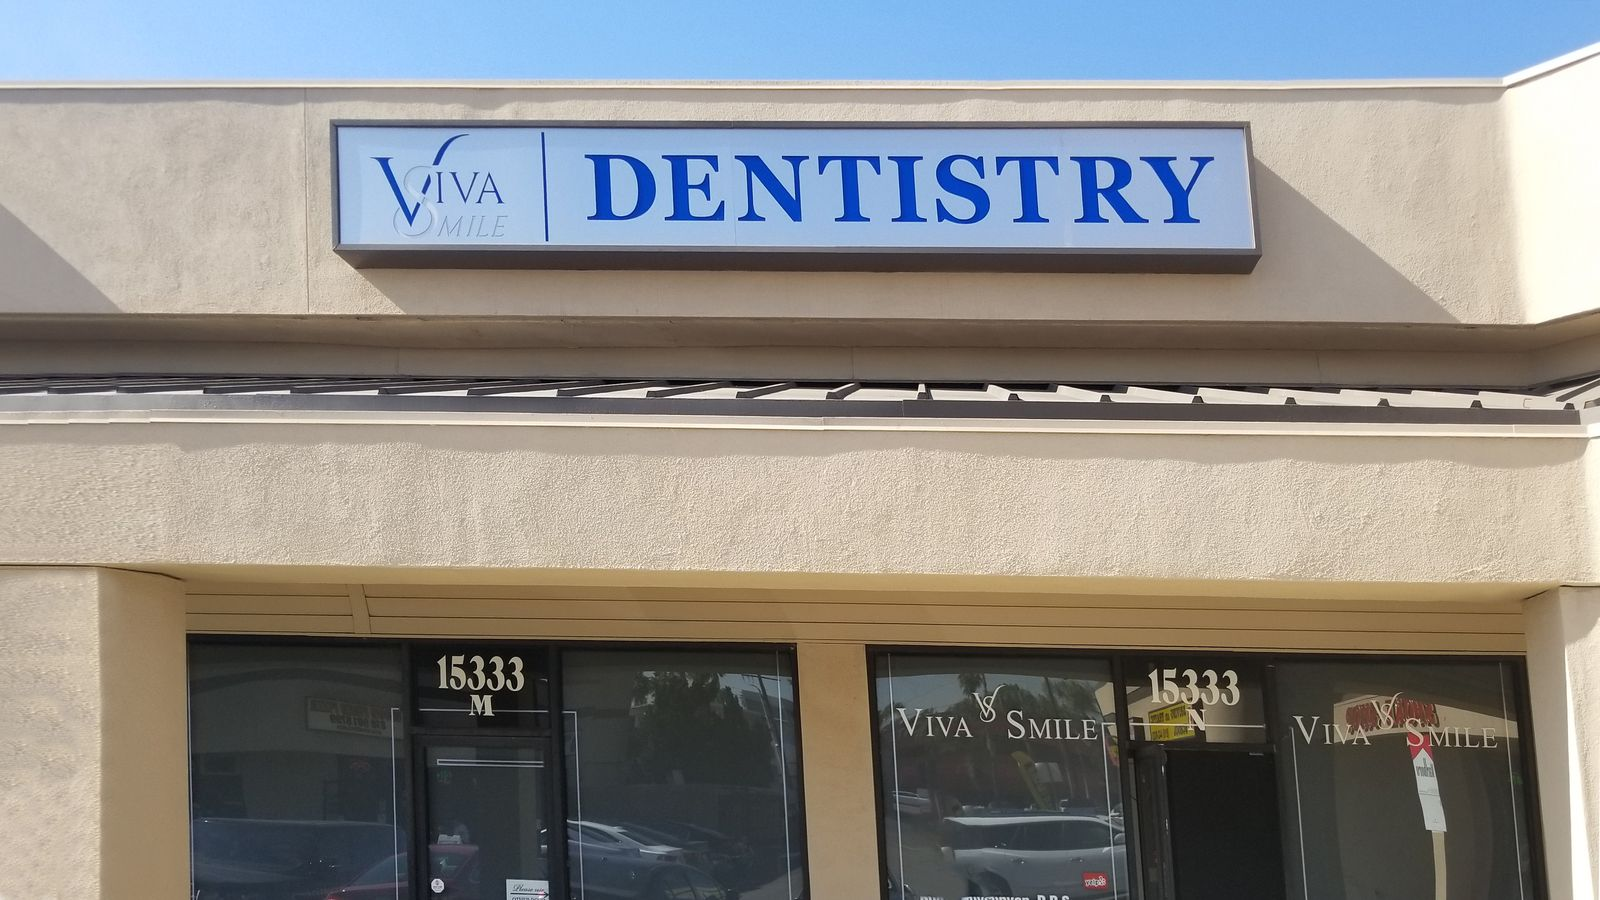 Viva Smile exterior light box with the name and logo of the company made of acrylic and aluminum for dentistry branding